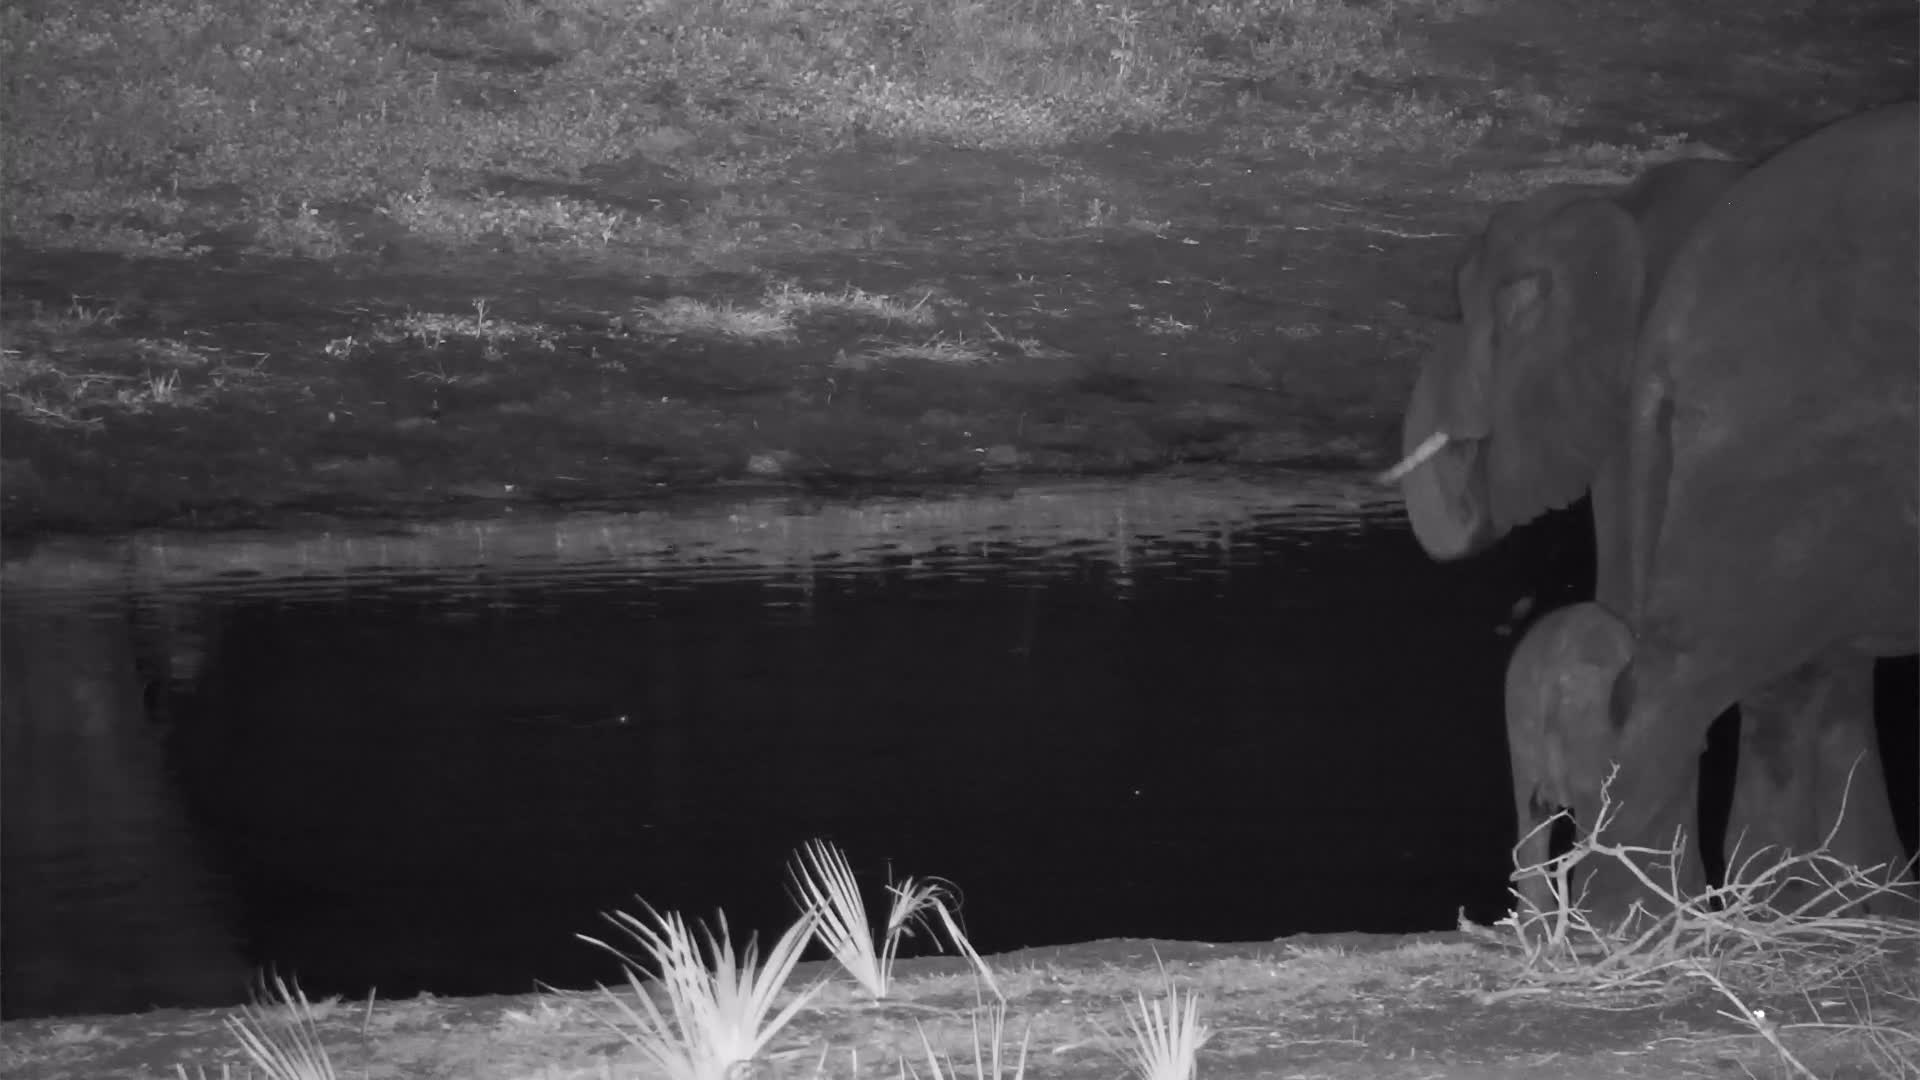 VIDEO: Elephants with a tiny Baby came to the waterhole for a short drink